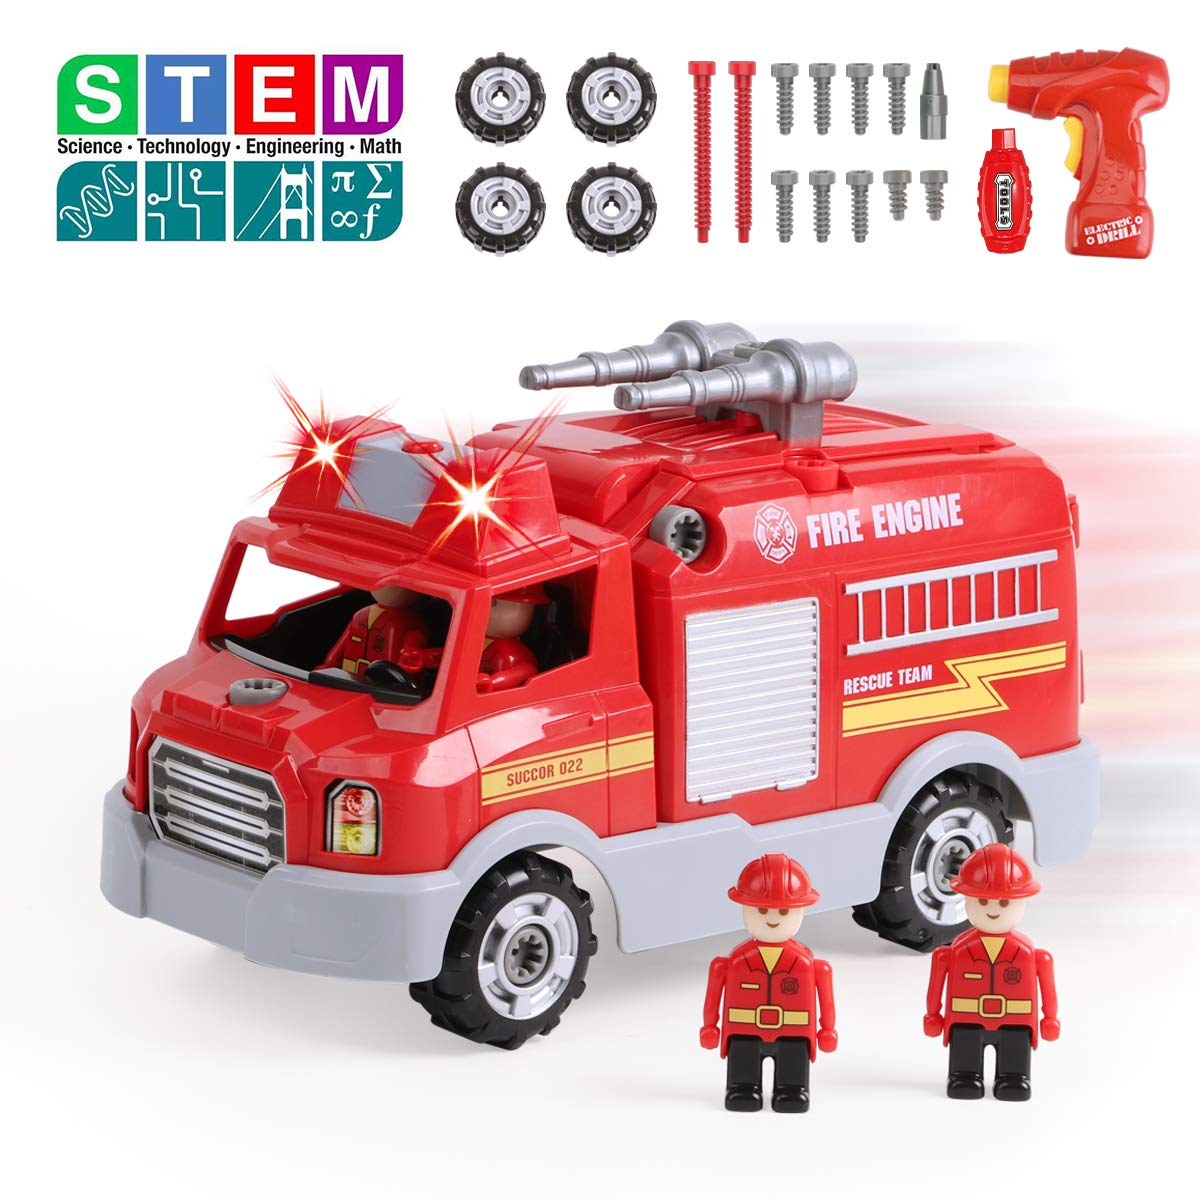 REMOKING STEM Learning Take Apart Toy for Boys & Girls, Build Your Own Car Toy Fire Truck Educational Playset with Tools and Power Drill, DIY Assembly Car with Realistic Sounds & Lights (3+ Ages) by REMOKING (Image #1)